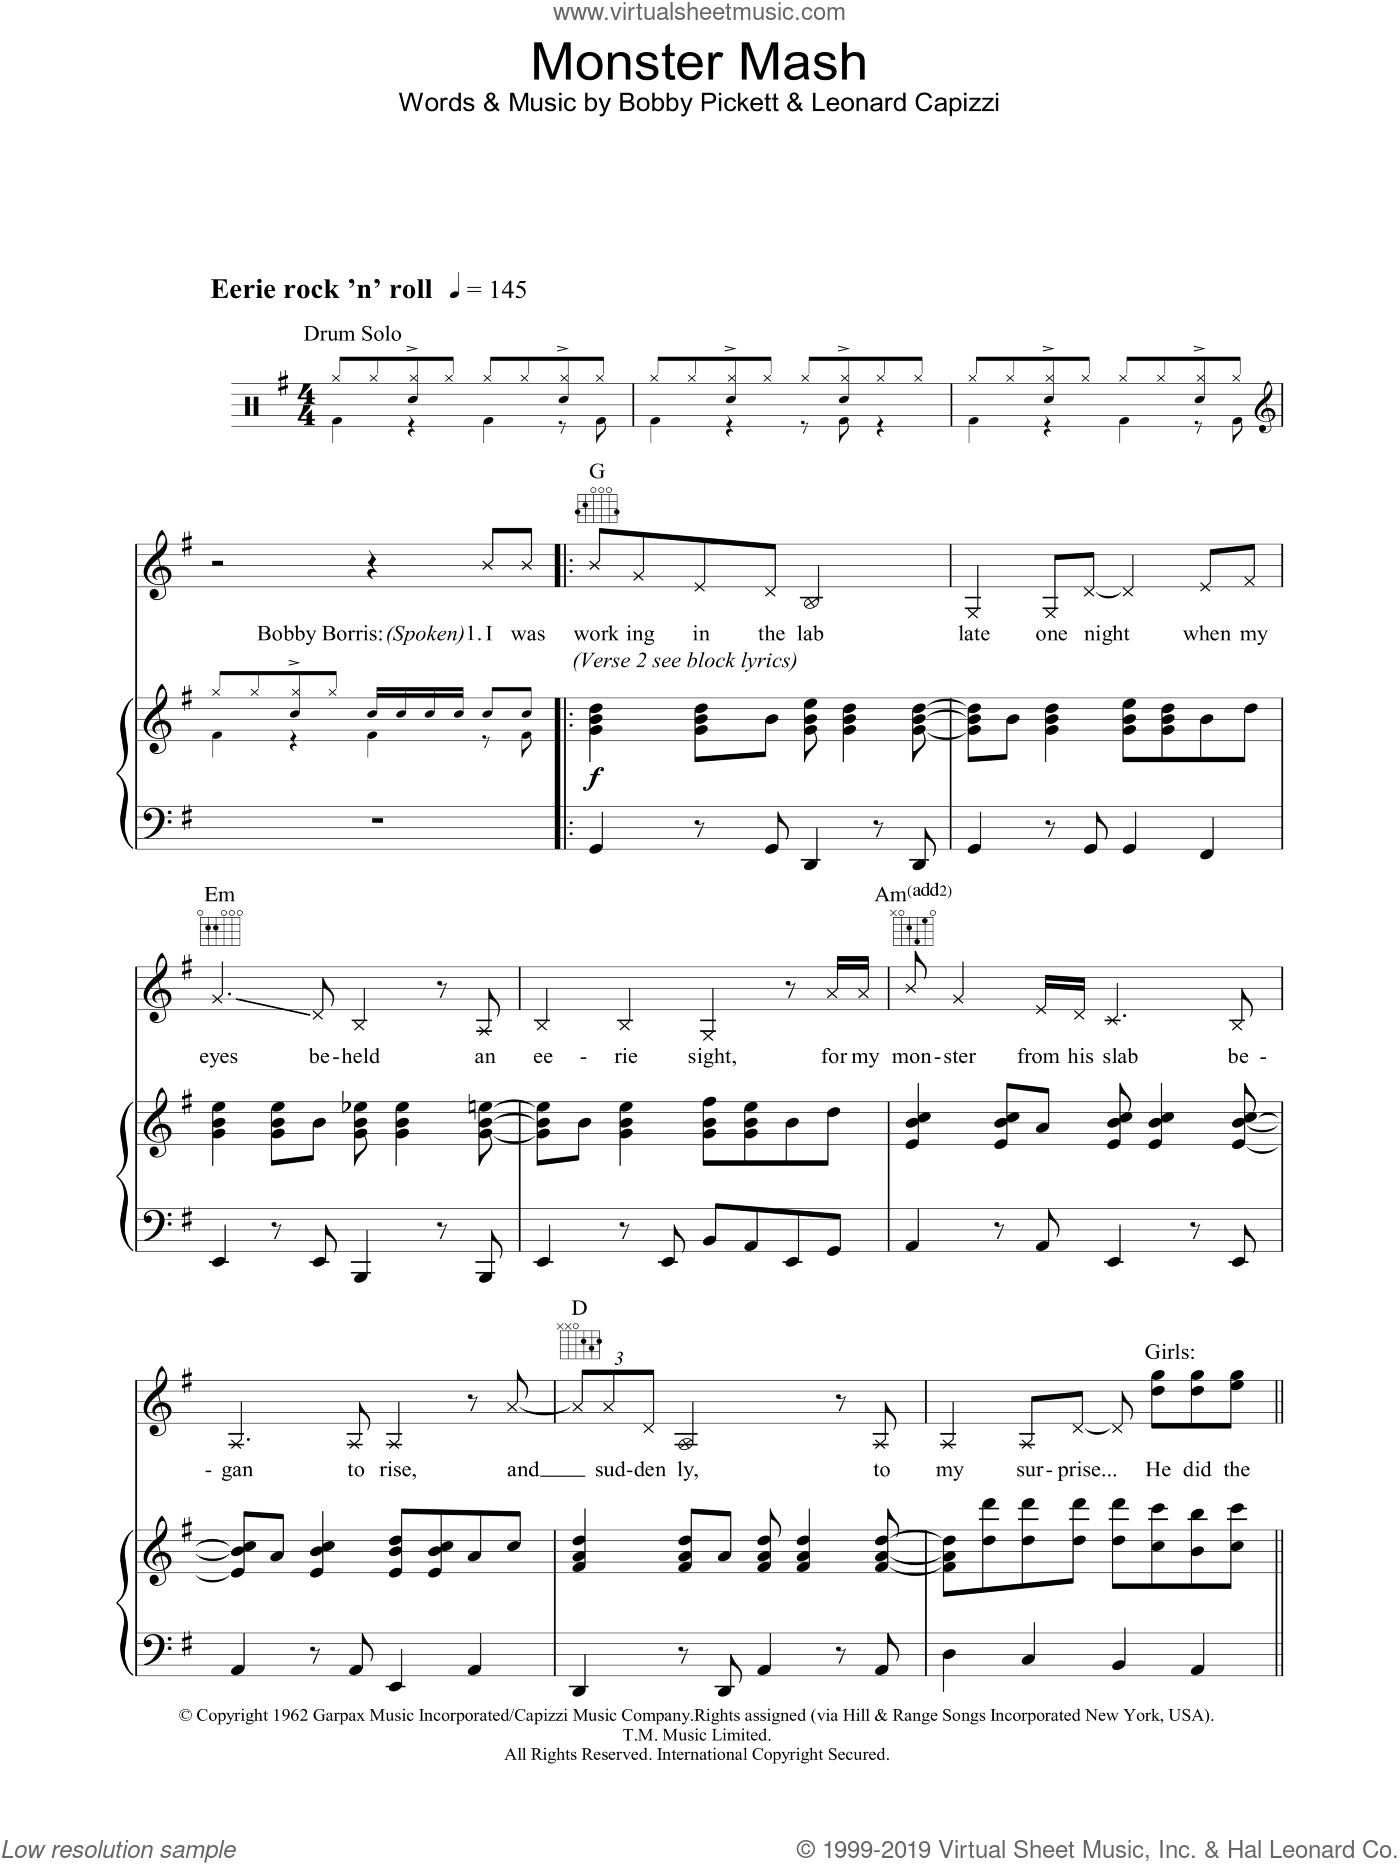 Monster Mash sheet music for voice, piano or guitar by Leonard Capizzi